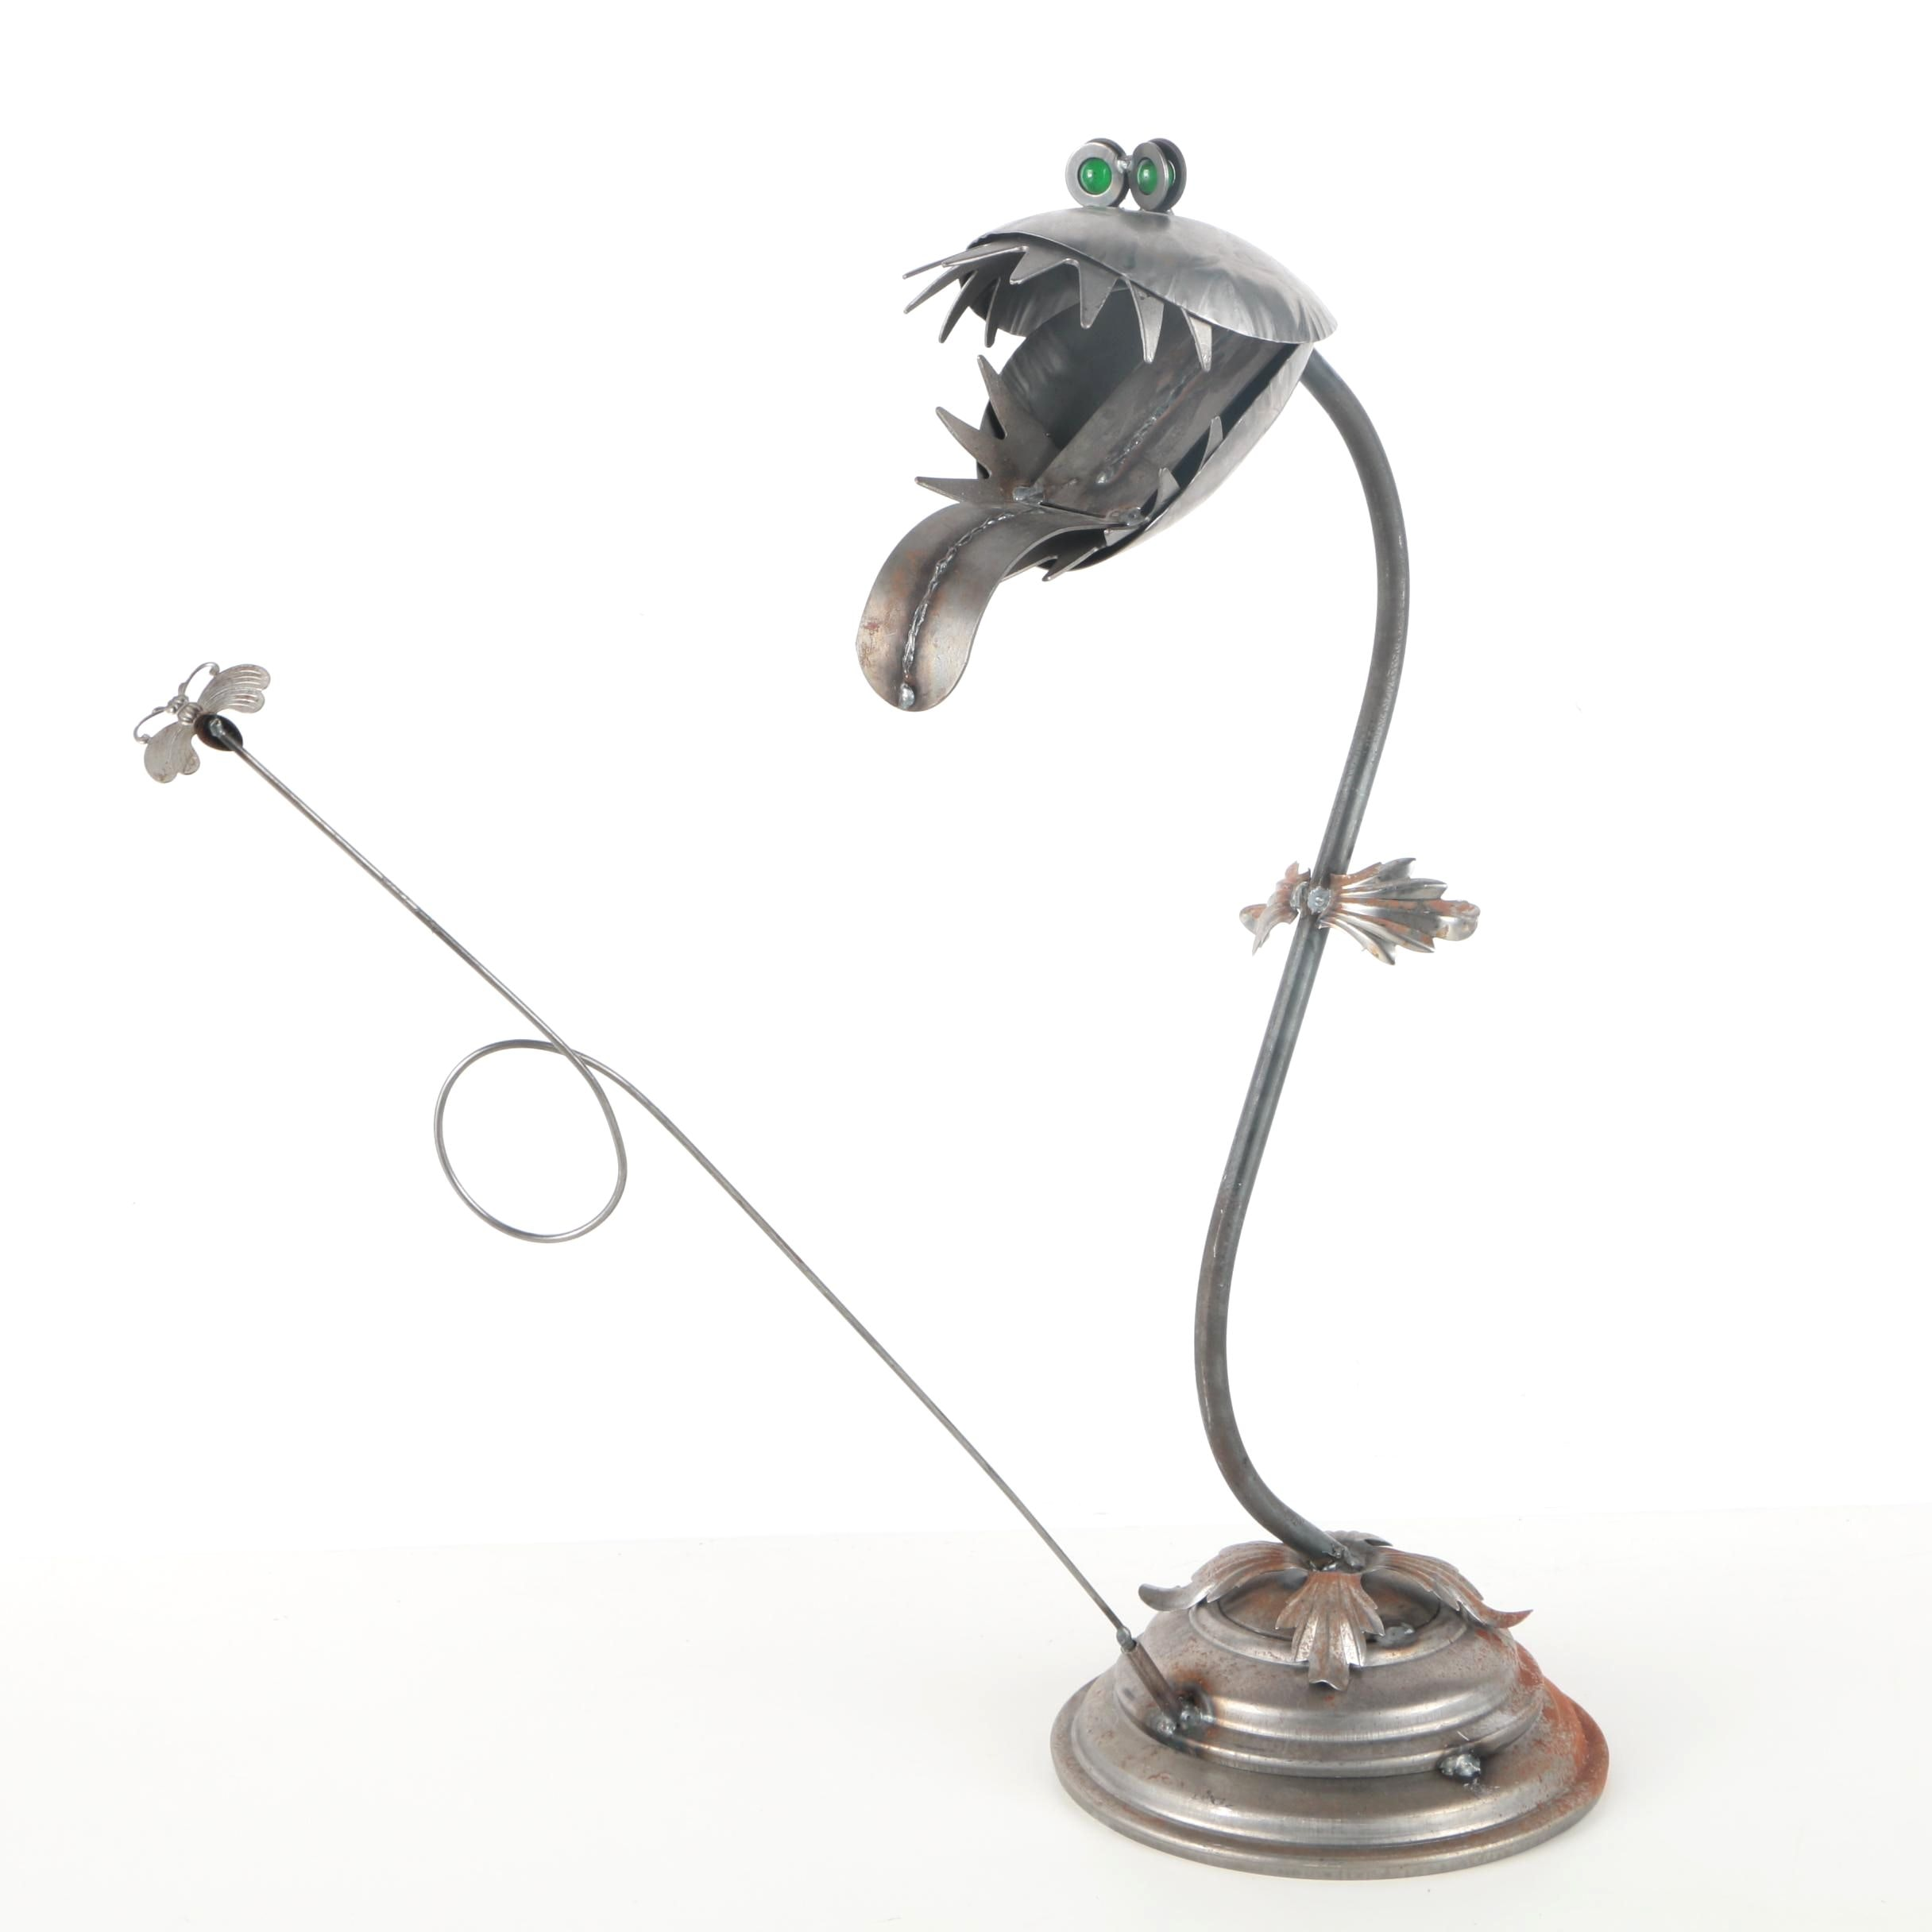 Steampunk Style Metal Sculpture of a Venus Flytrap and Fly